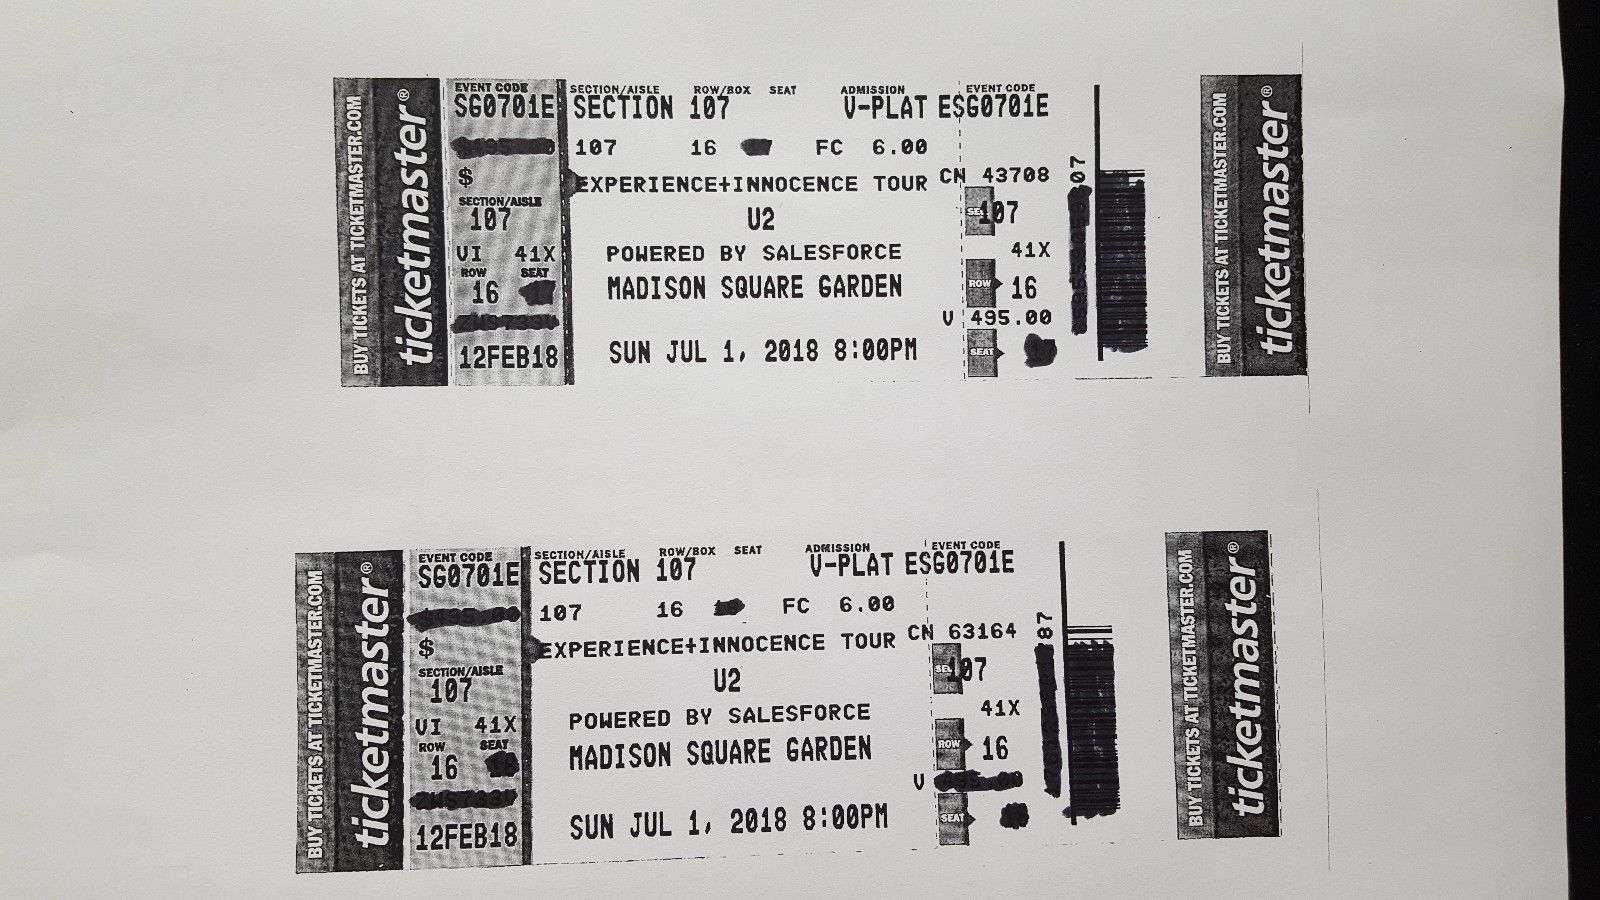 #tickets U2 Sunday July 1, Madison Square Garden, NYC 8PM   2 Excellent